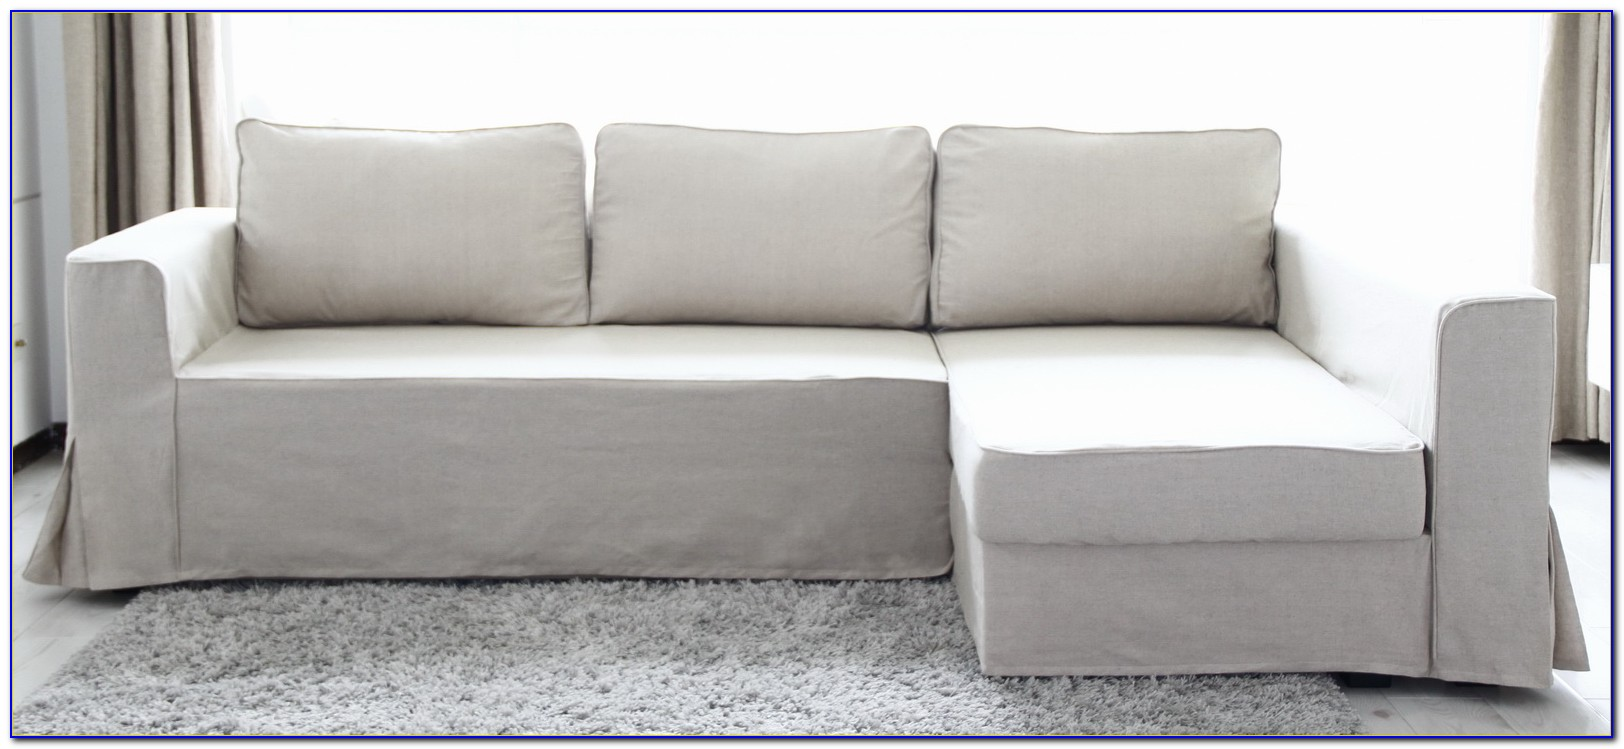 Fitted Slipcovers For Sectional Sofas